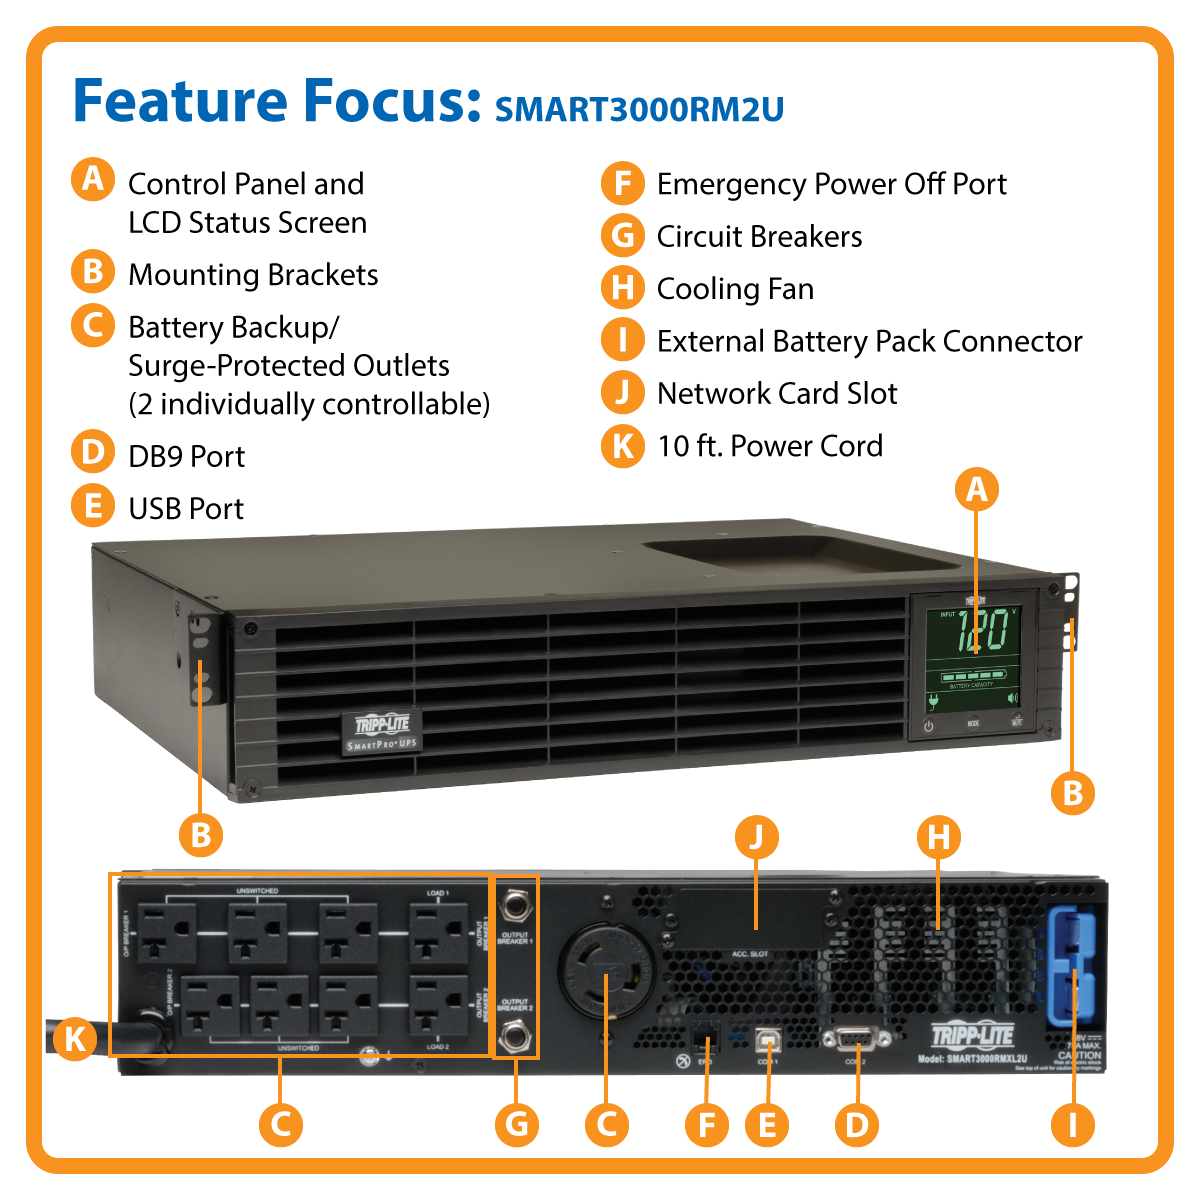 slide 1 of 8,show larger image, smart3000rm2u smartpro® line-interactive rack/tower sine wave ups with expandable runtime, network slot and lcd